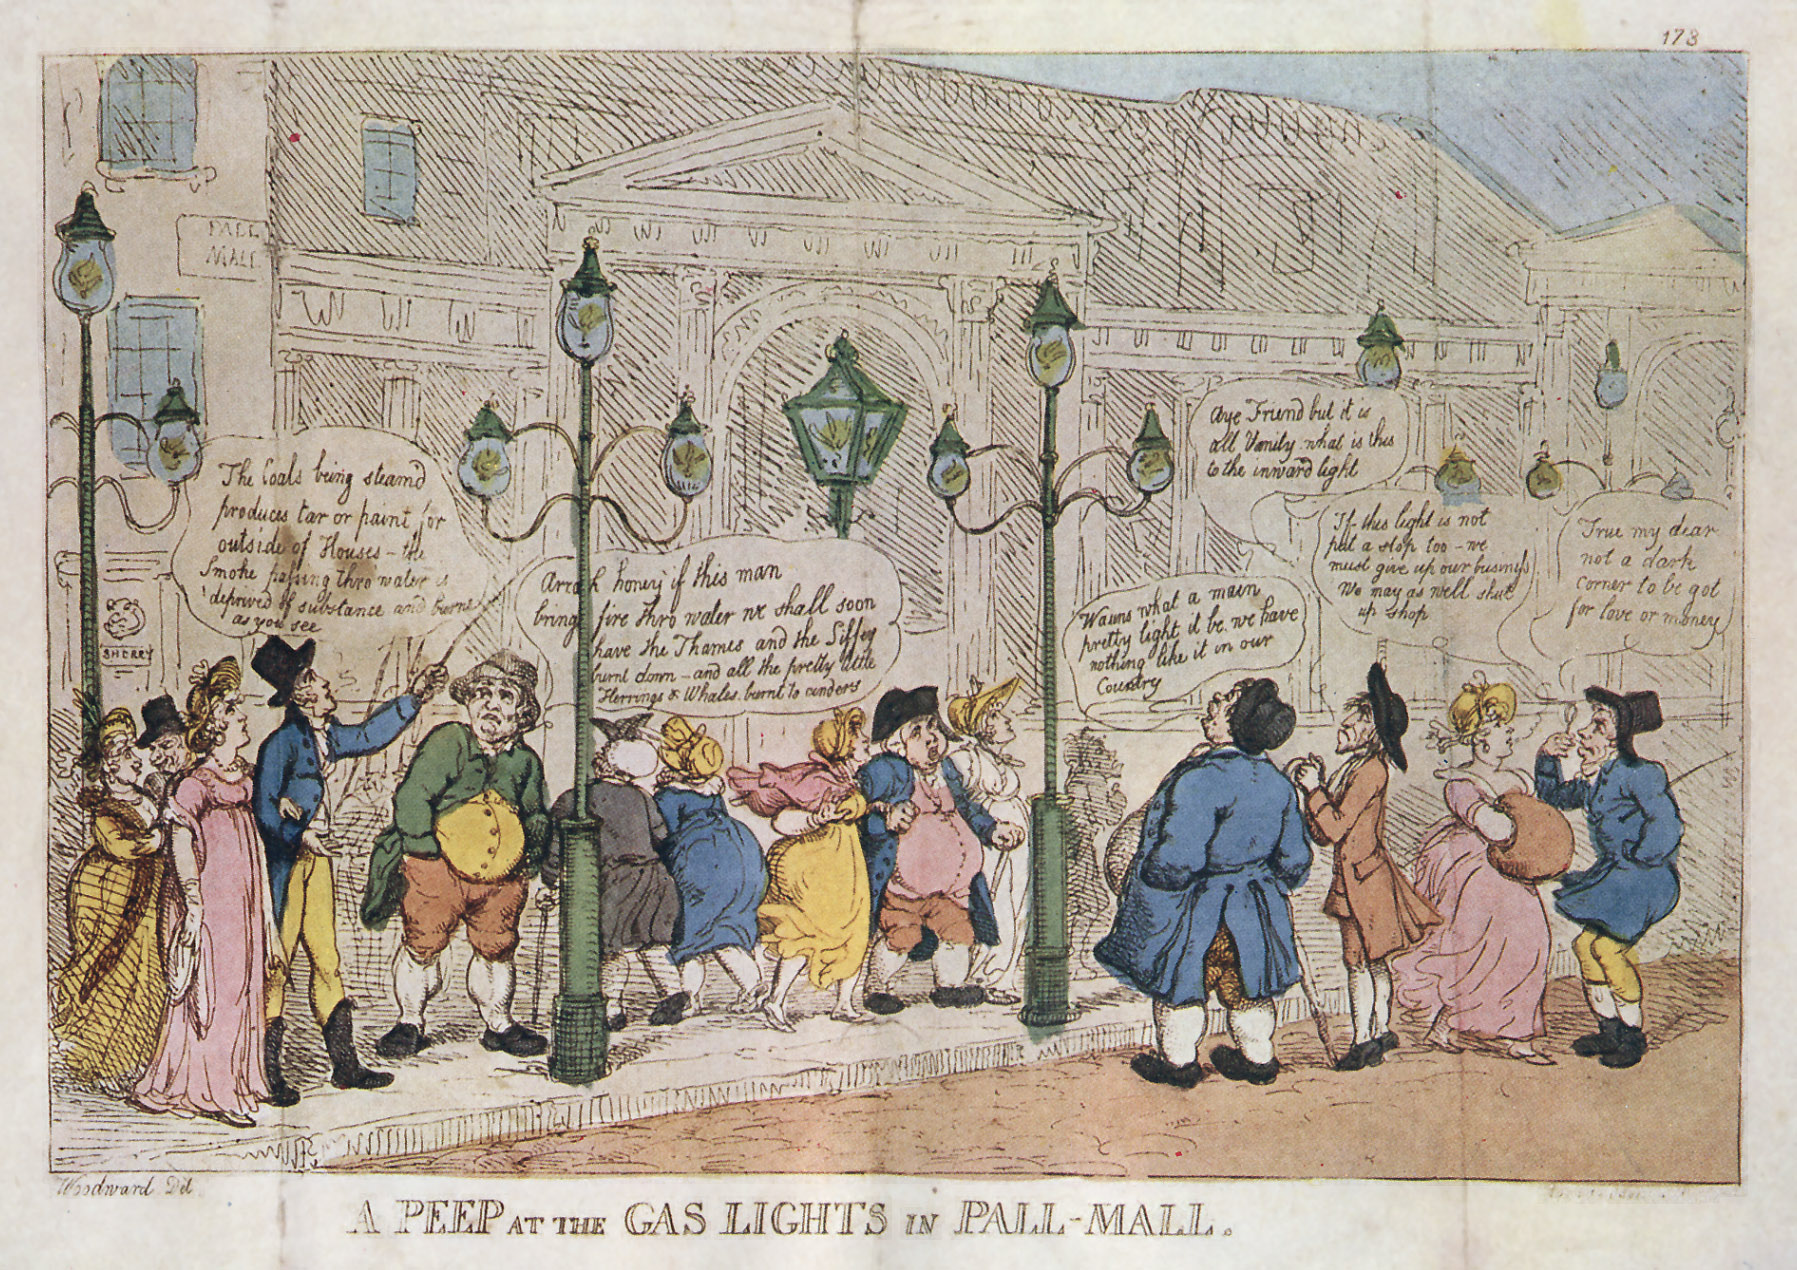 FileA Peep at the Gas Lights in Pall Mall Rowlandson 1809.jpg : gas lighting history - www.canuckmediamonitor.org